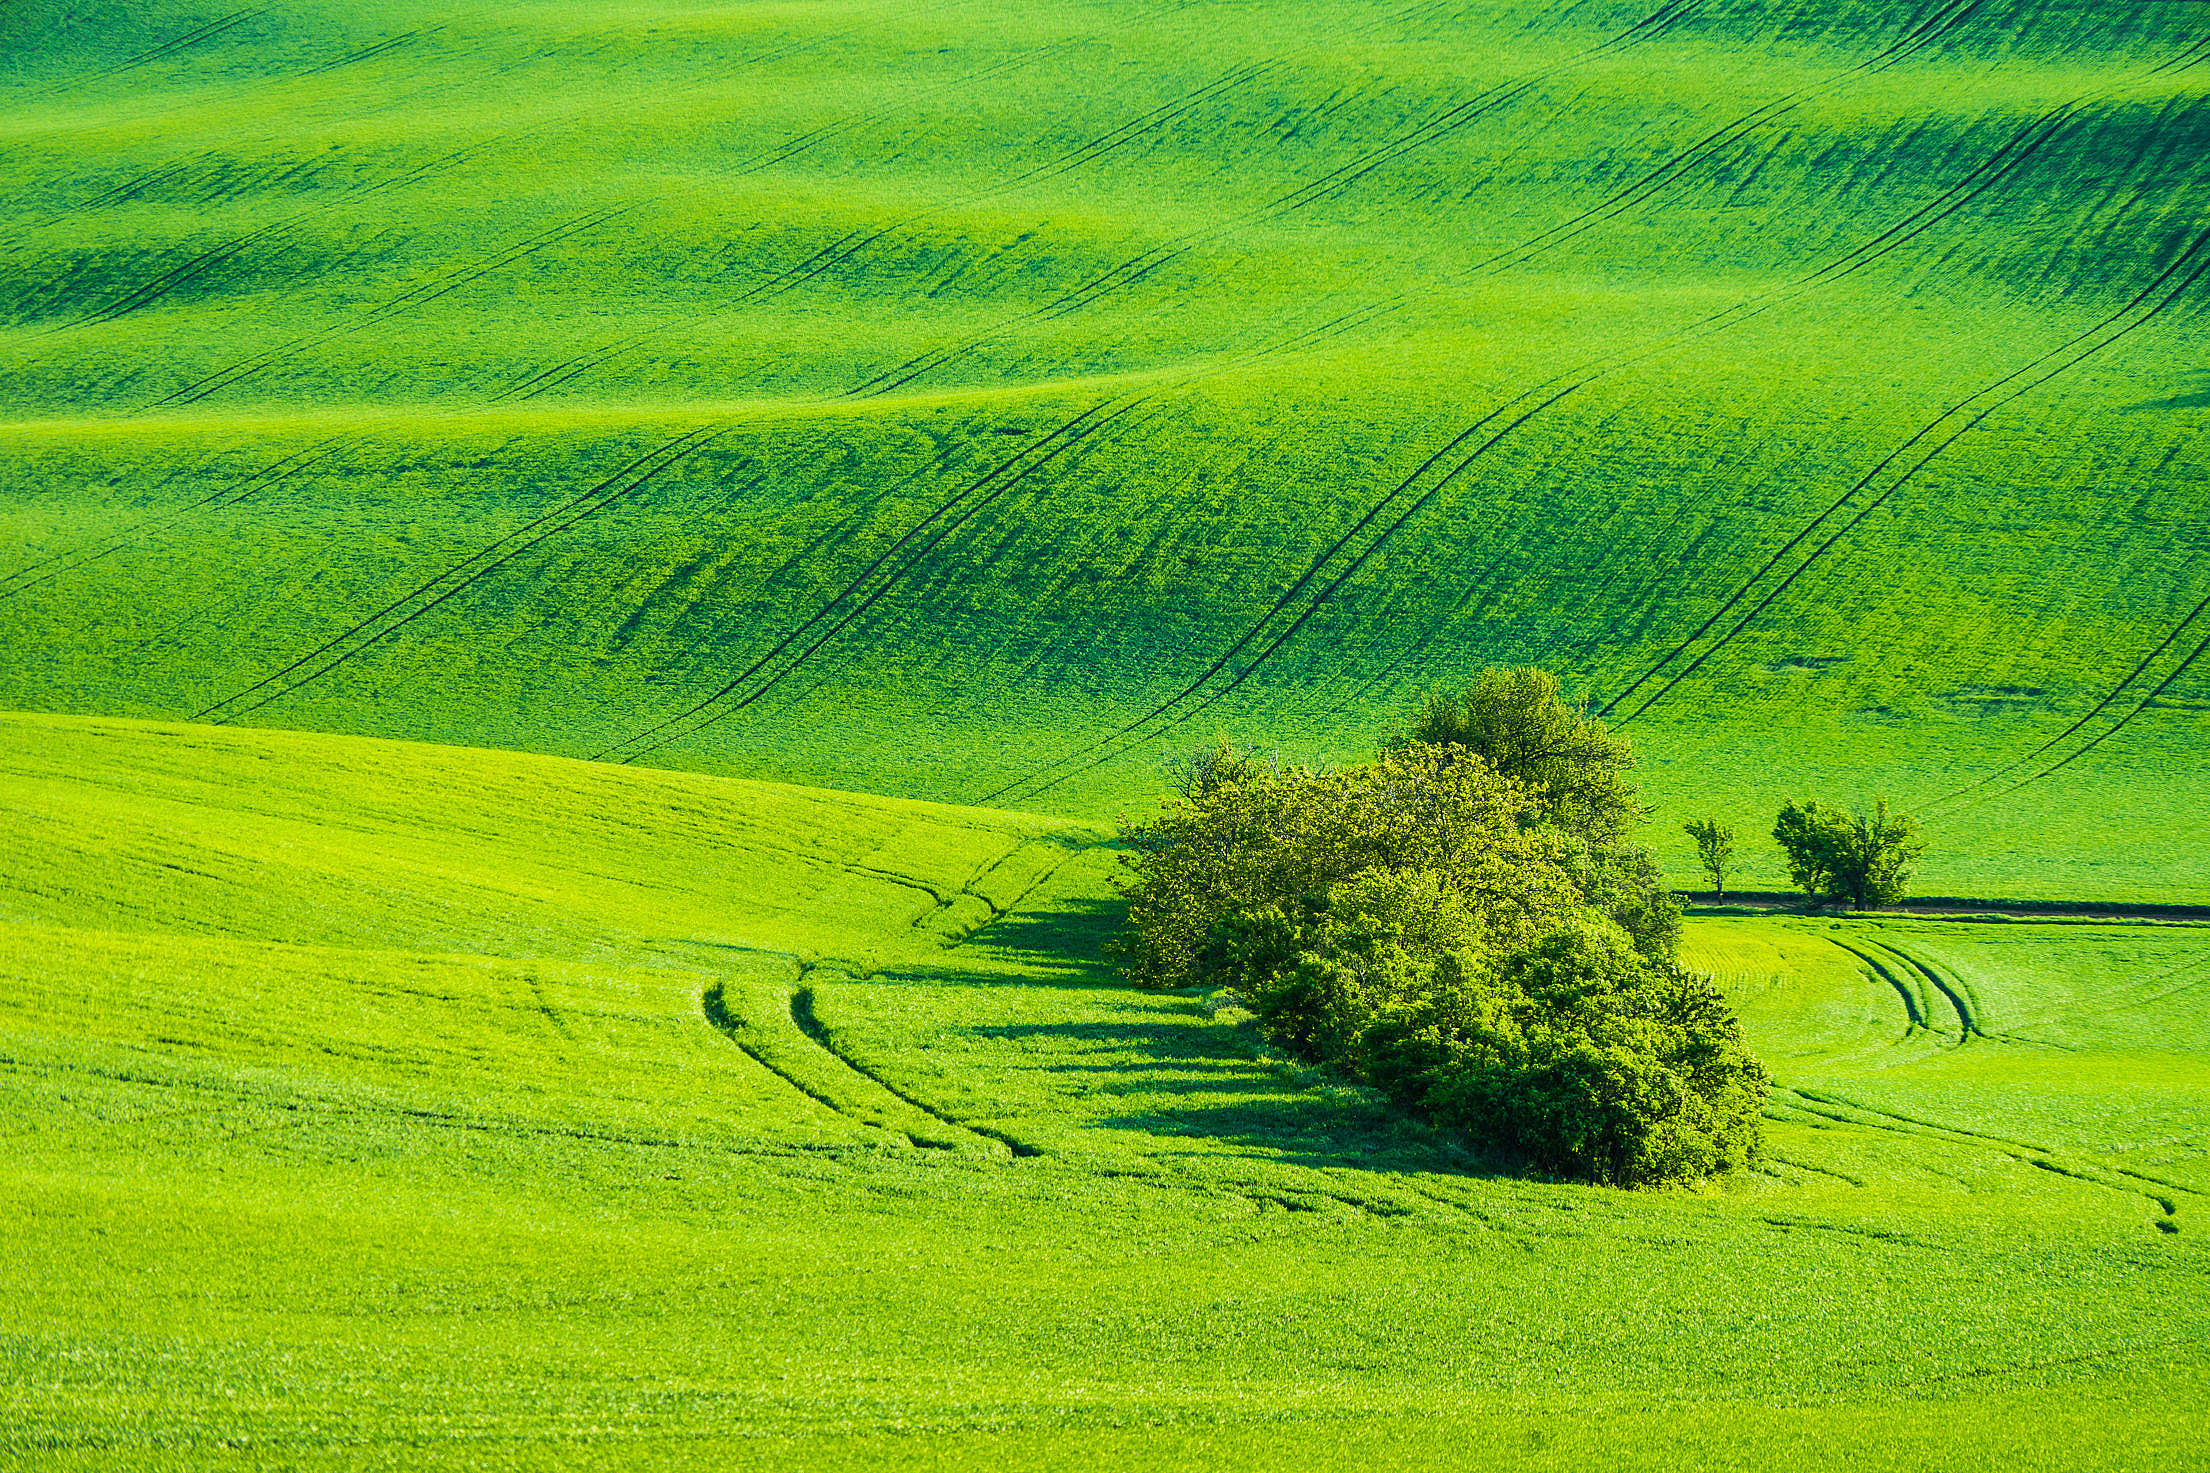 Green Fields with Wild Trees Free Stock Photo